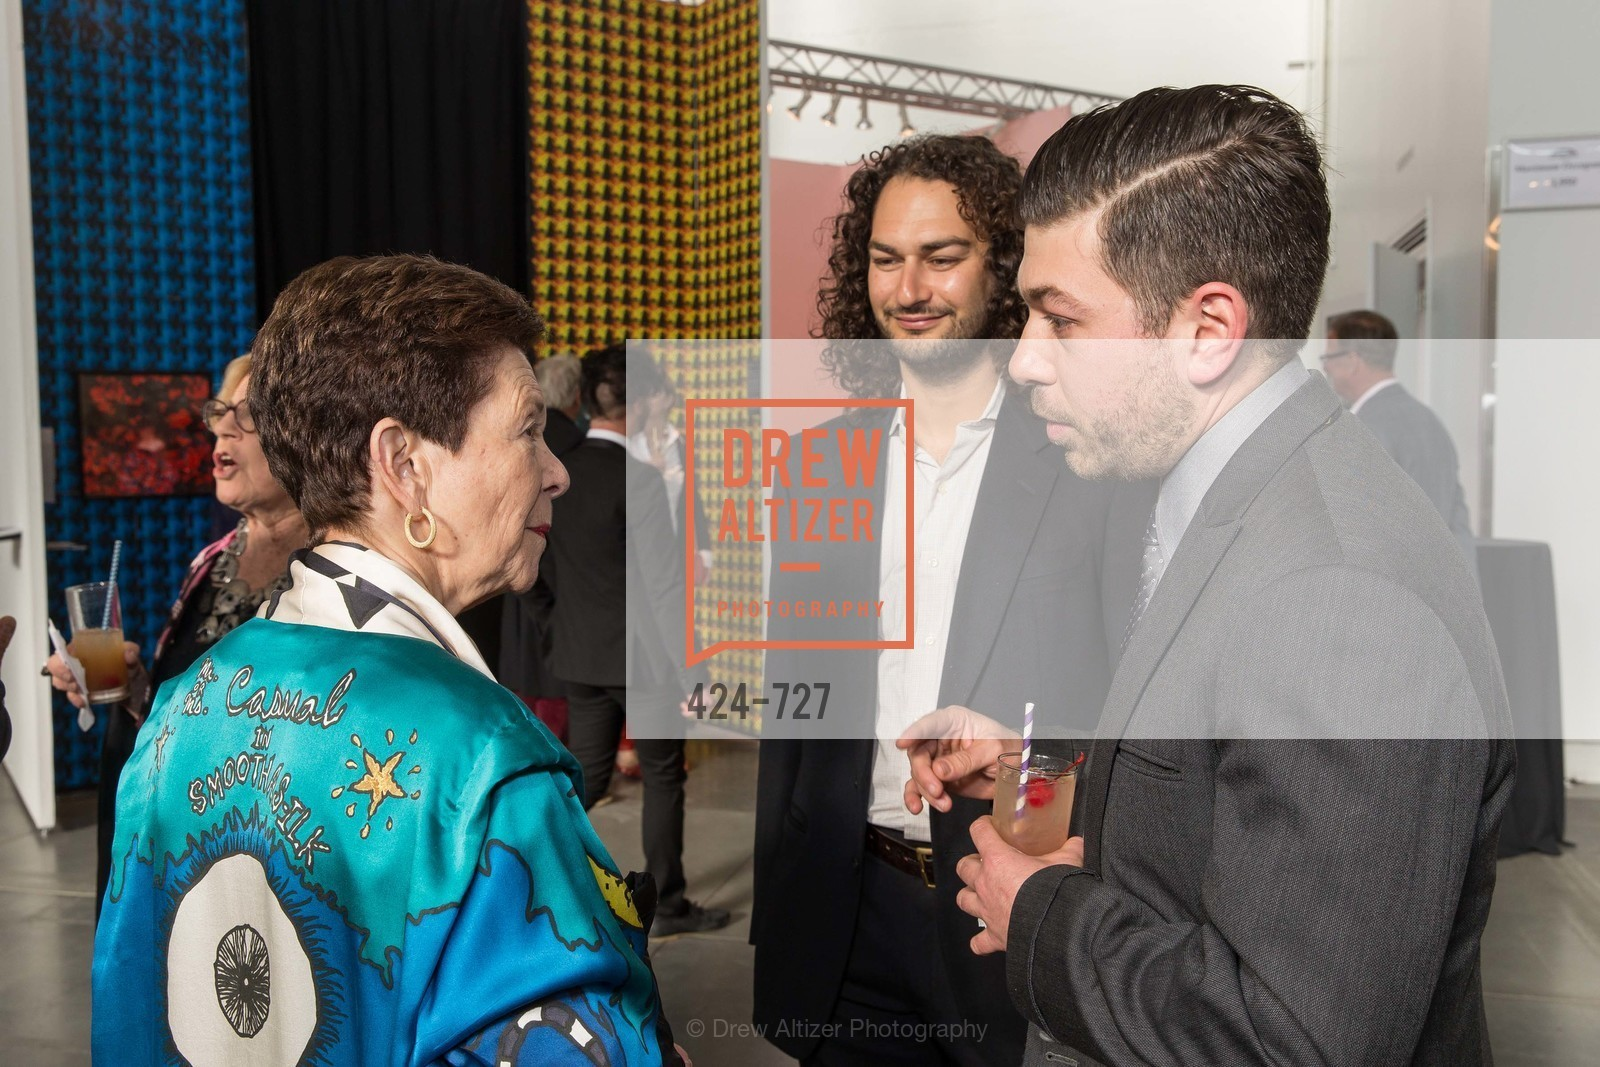 Cissie Swig, Adam Swig, SAN FRANCISCO ART INSTITUTE Gala Honoring Art Visionary and Advocate ROSELYNE CHROMAN SWIG, US, May 13th, 2015,Drew Altizer, Drew Altizer Photography, full-service agency, private events, San Francisco photographer, photographer california